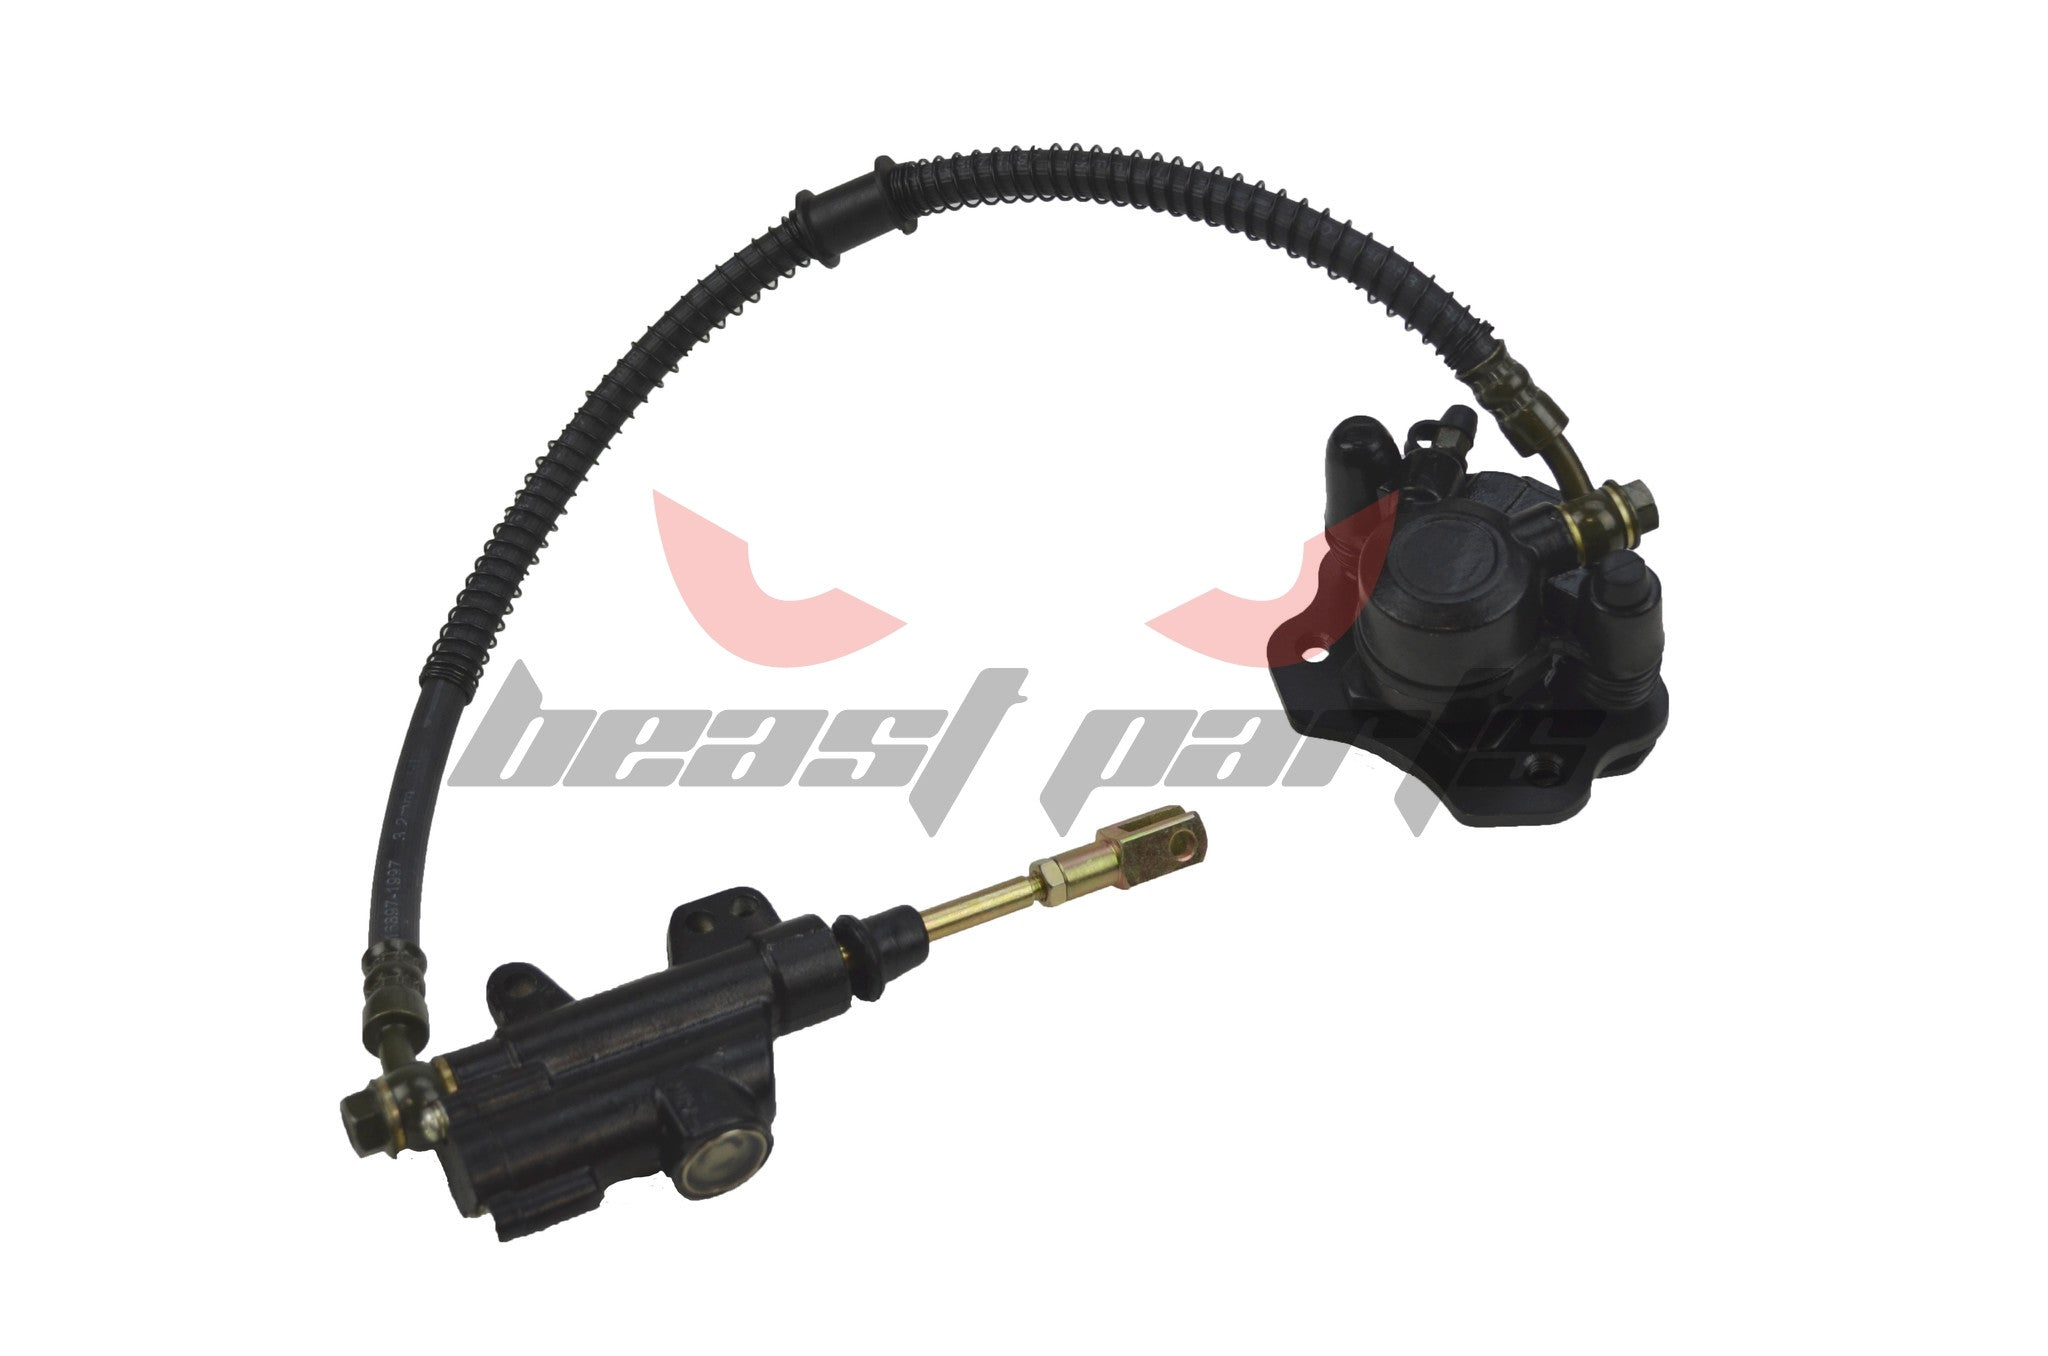 ATA125D Rear Brake - FOR NEW STYLE 125 D